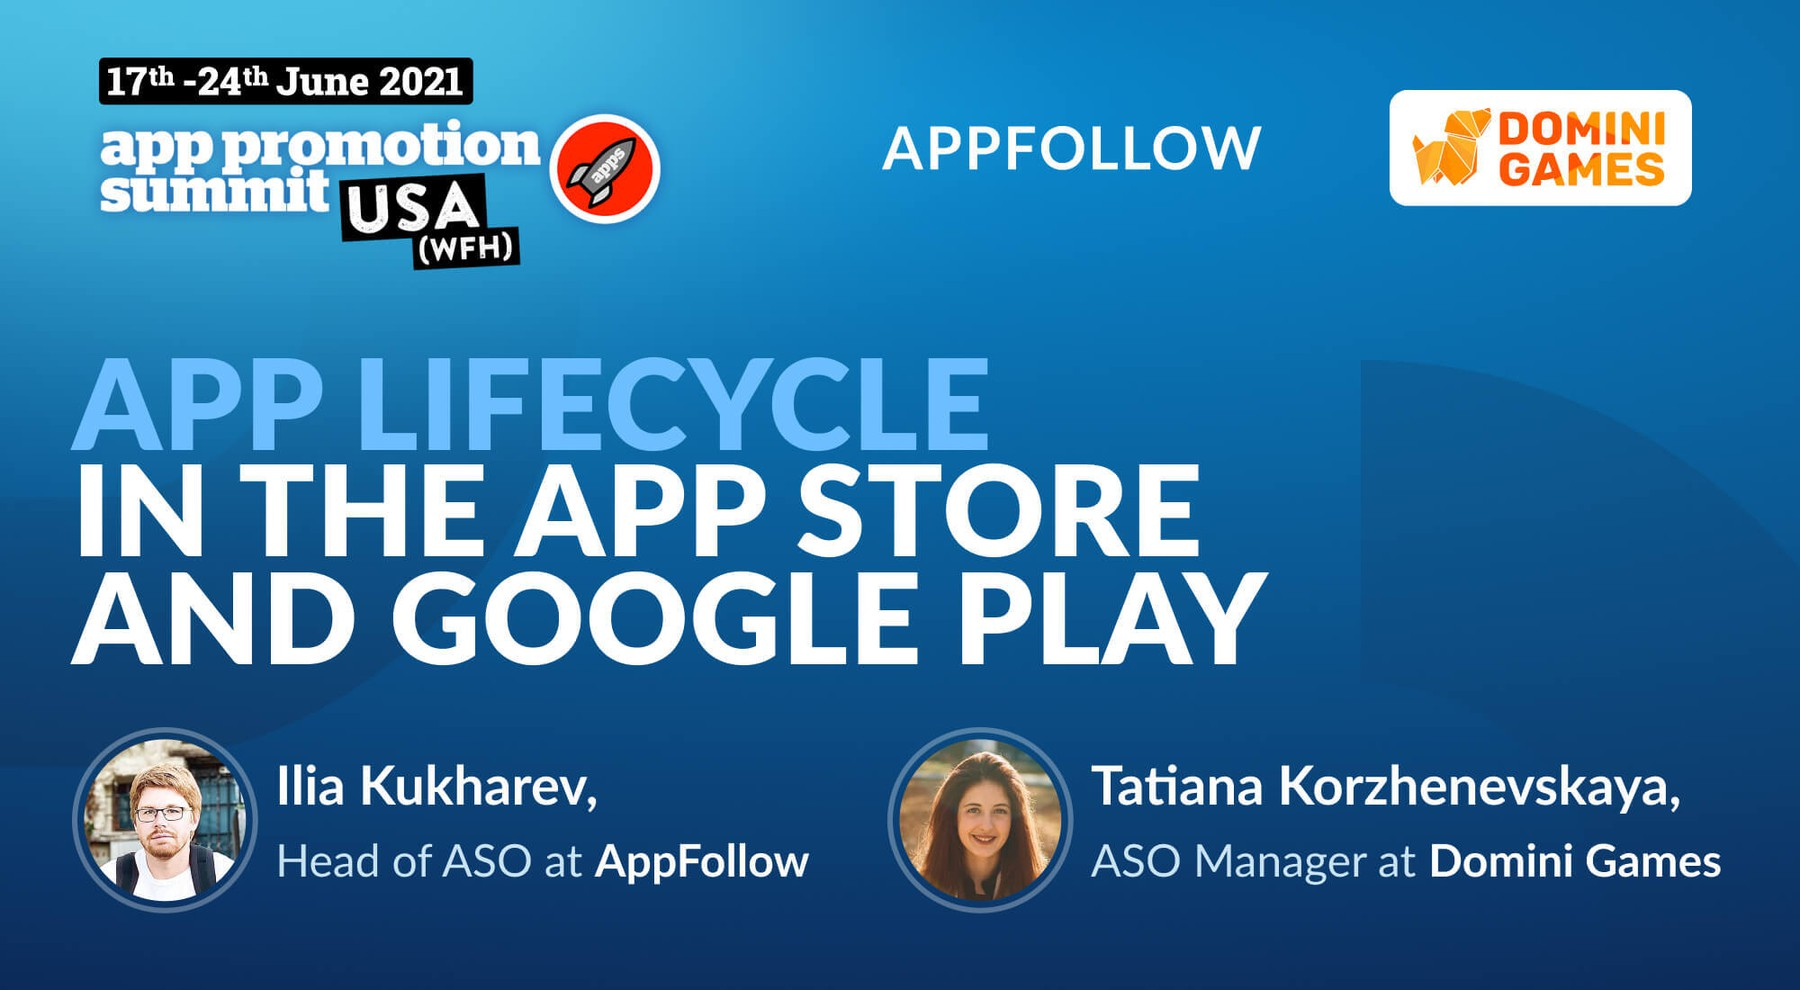 AppFollow and Domini Games host сo-session at App Promotion Summit USA